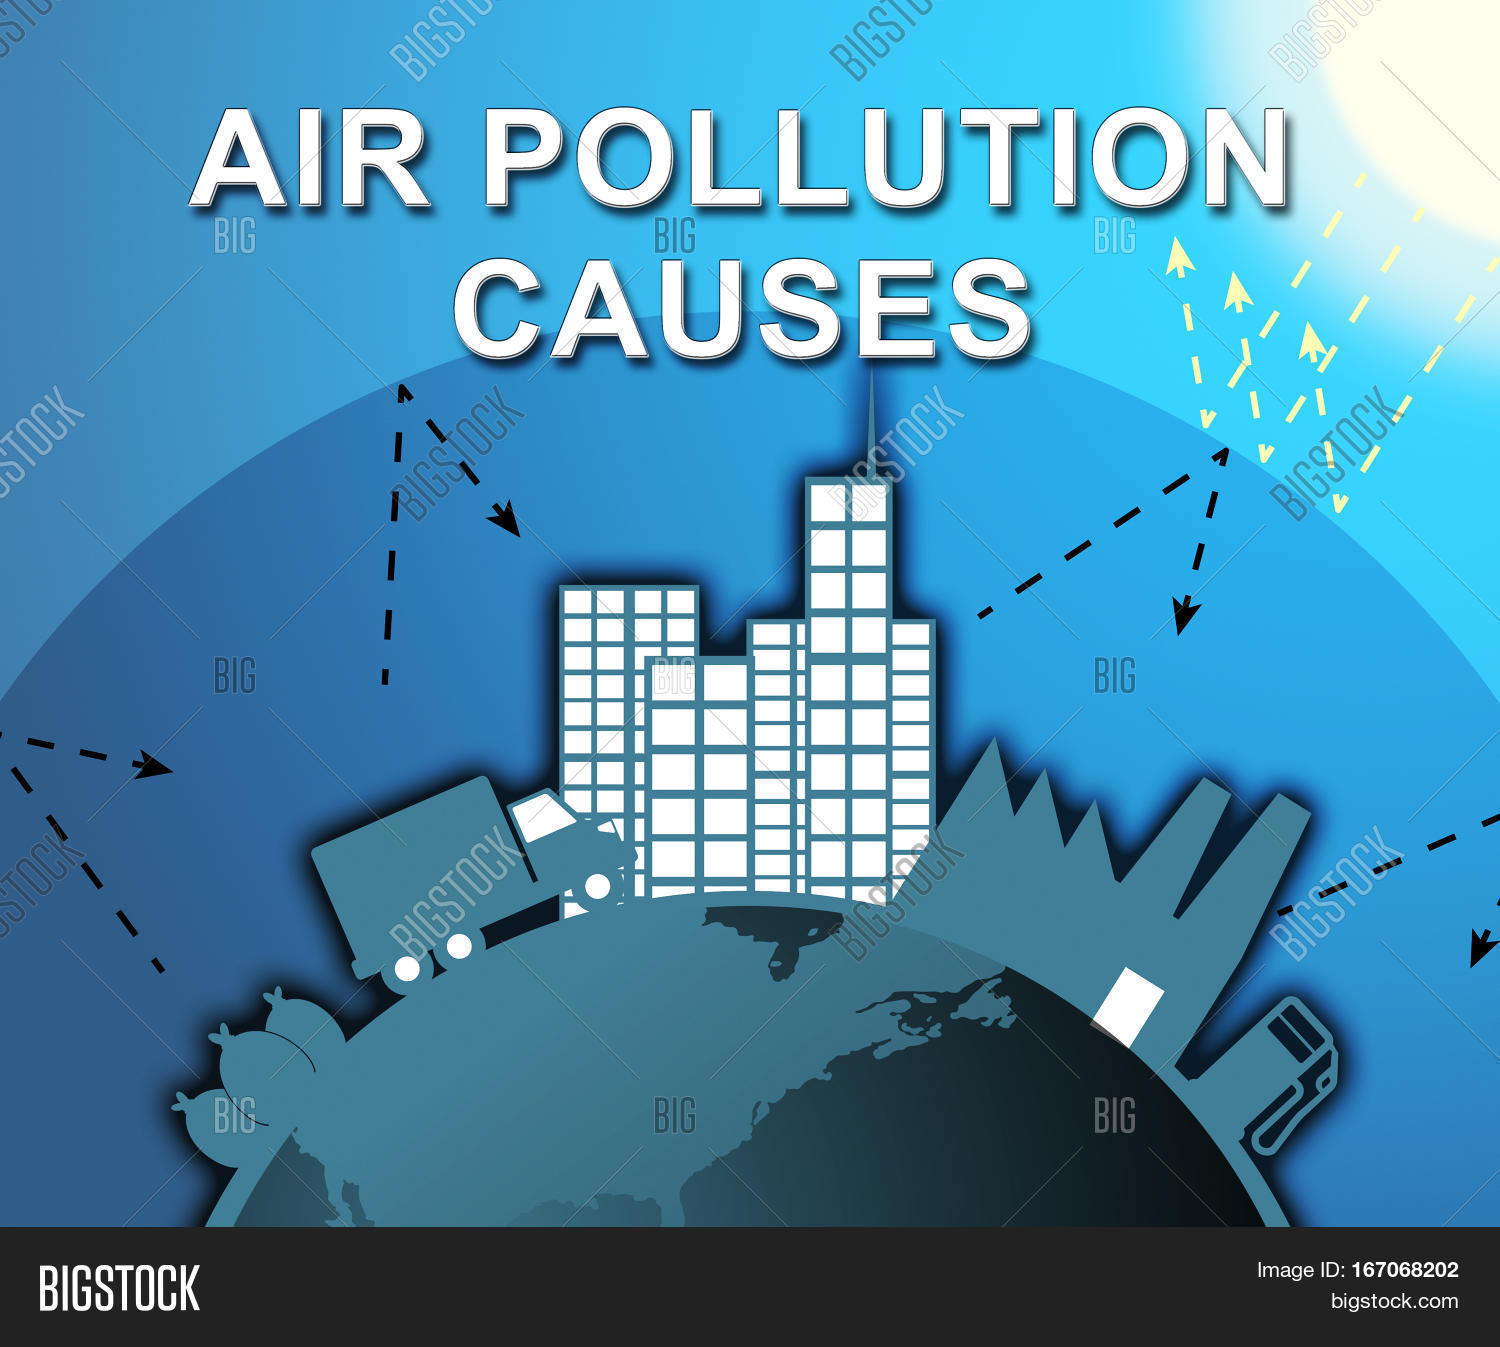 air pollution in big cities essay Serious air pollution occurs in big industrial ares and big cities because there are many mills and factories and motor vehicles by taking in polluted air we suffer from various diseases even many people die of respiratory diseases from this pollution every day.